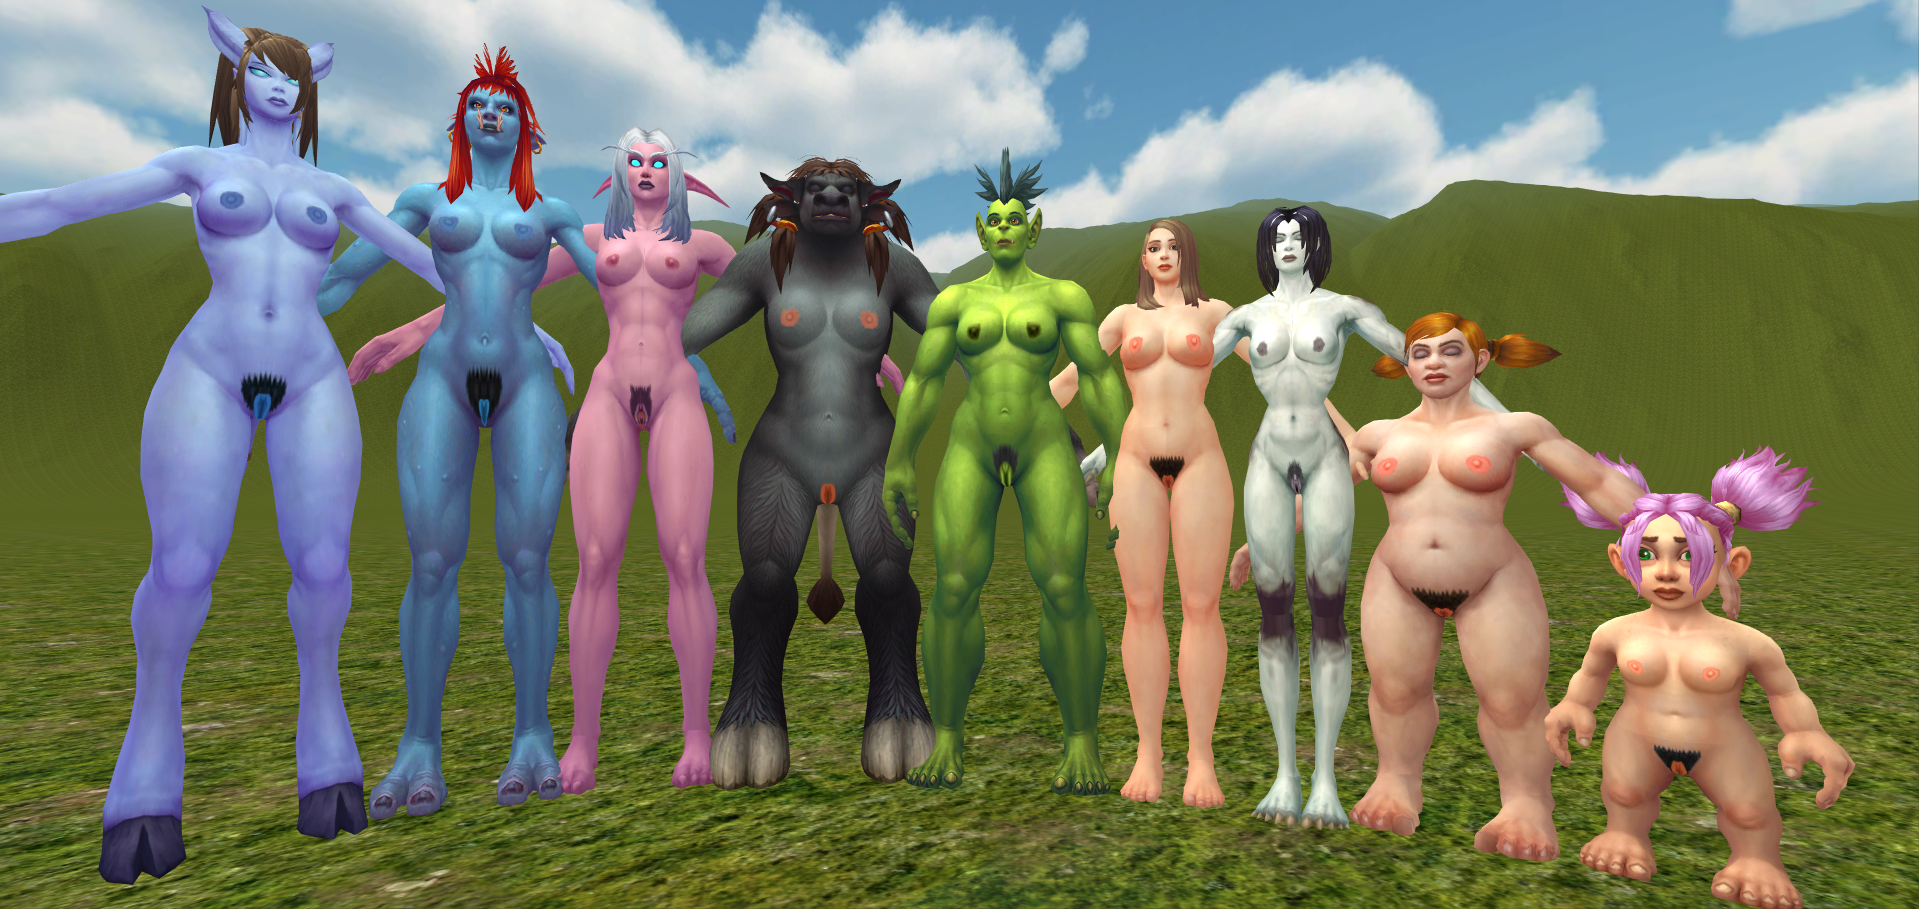 Nude skin postal 2 screenshot hentia tube